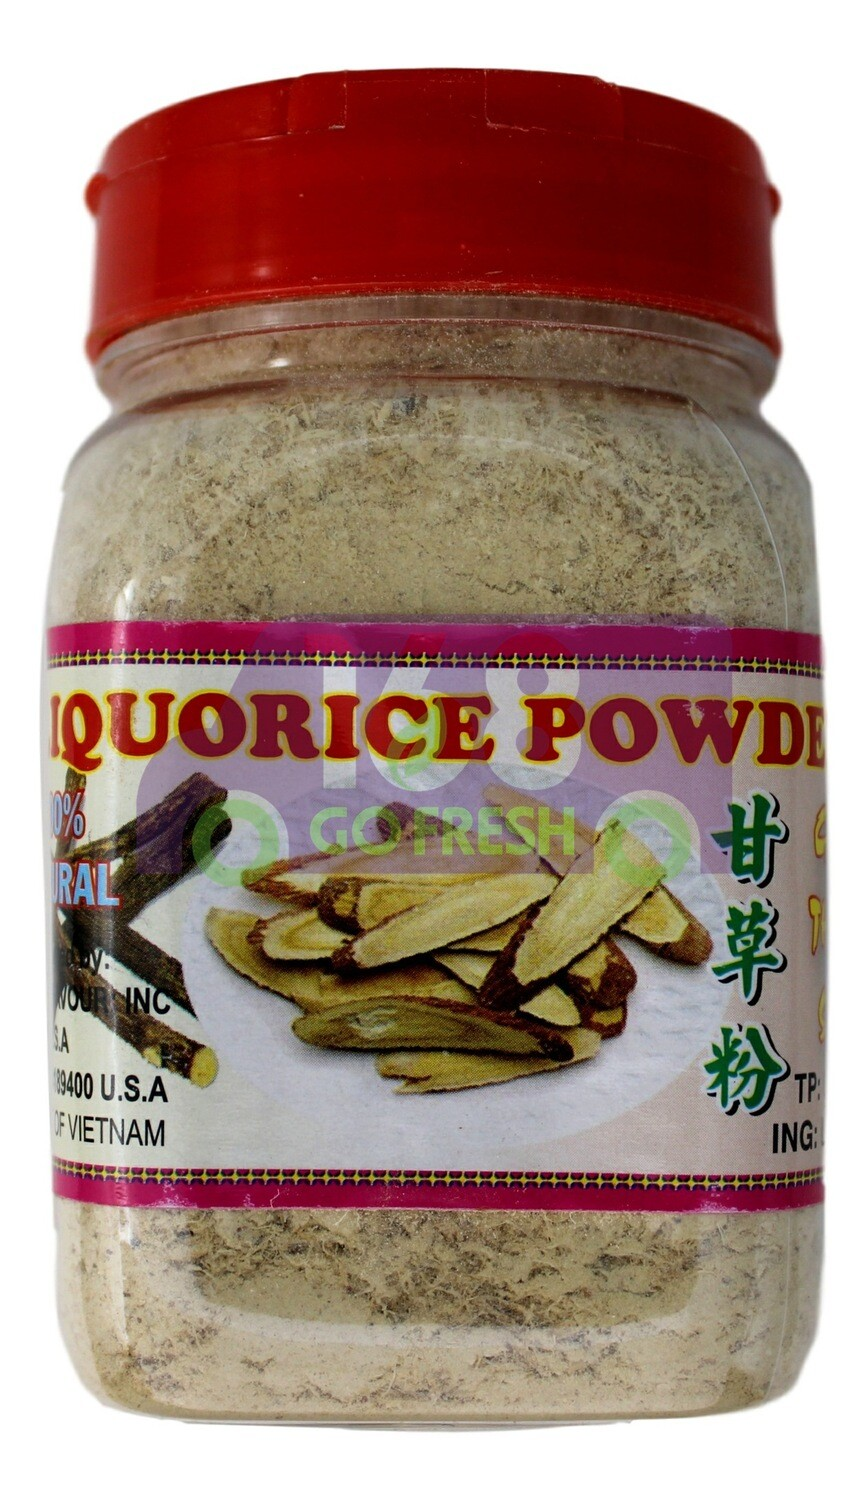 Best Taste Brand Liquorice Power 越南红马 甘草粉(4OZ)